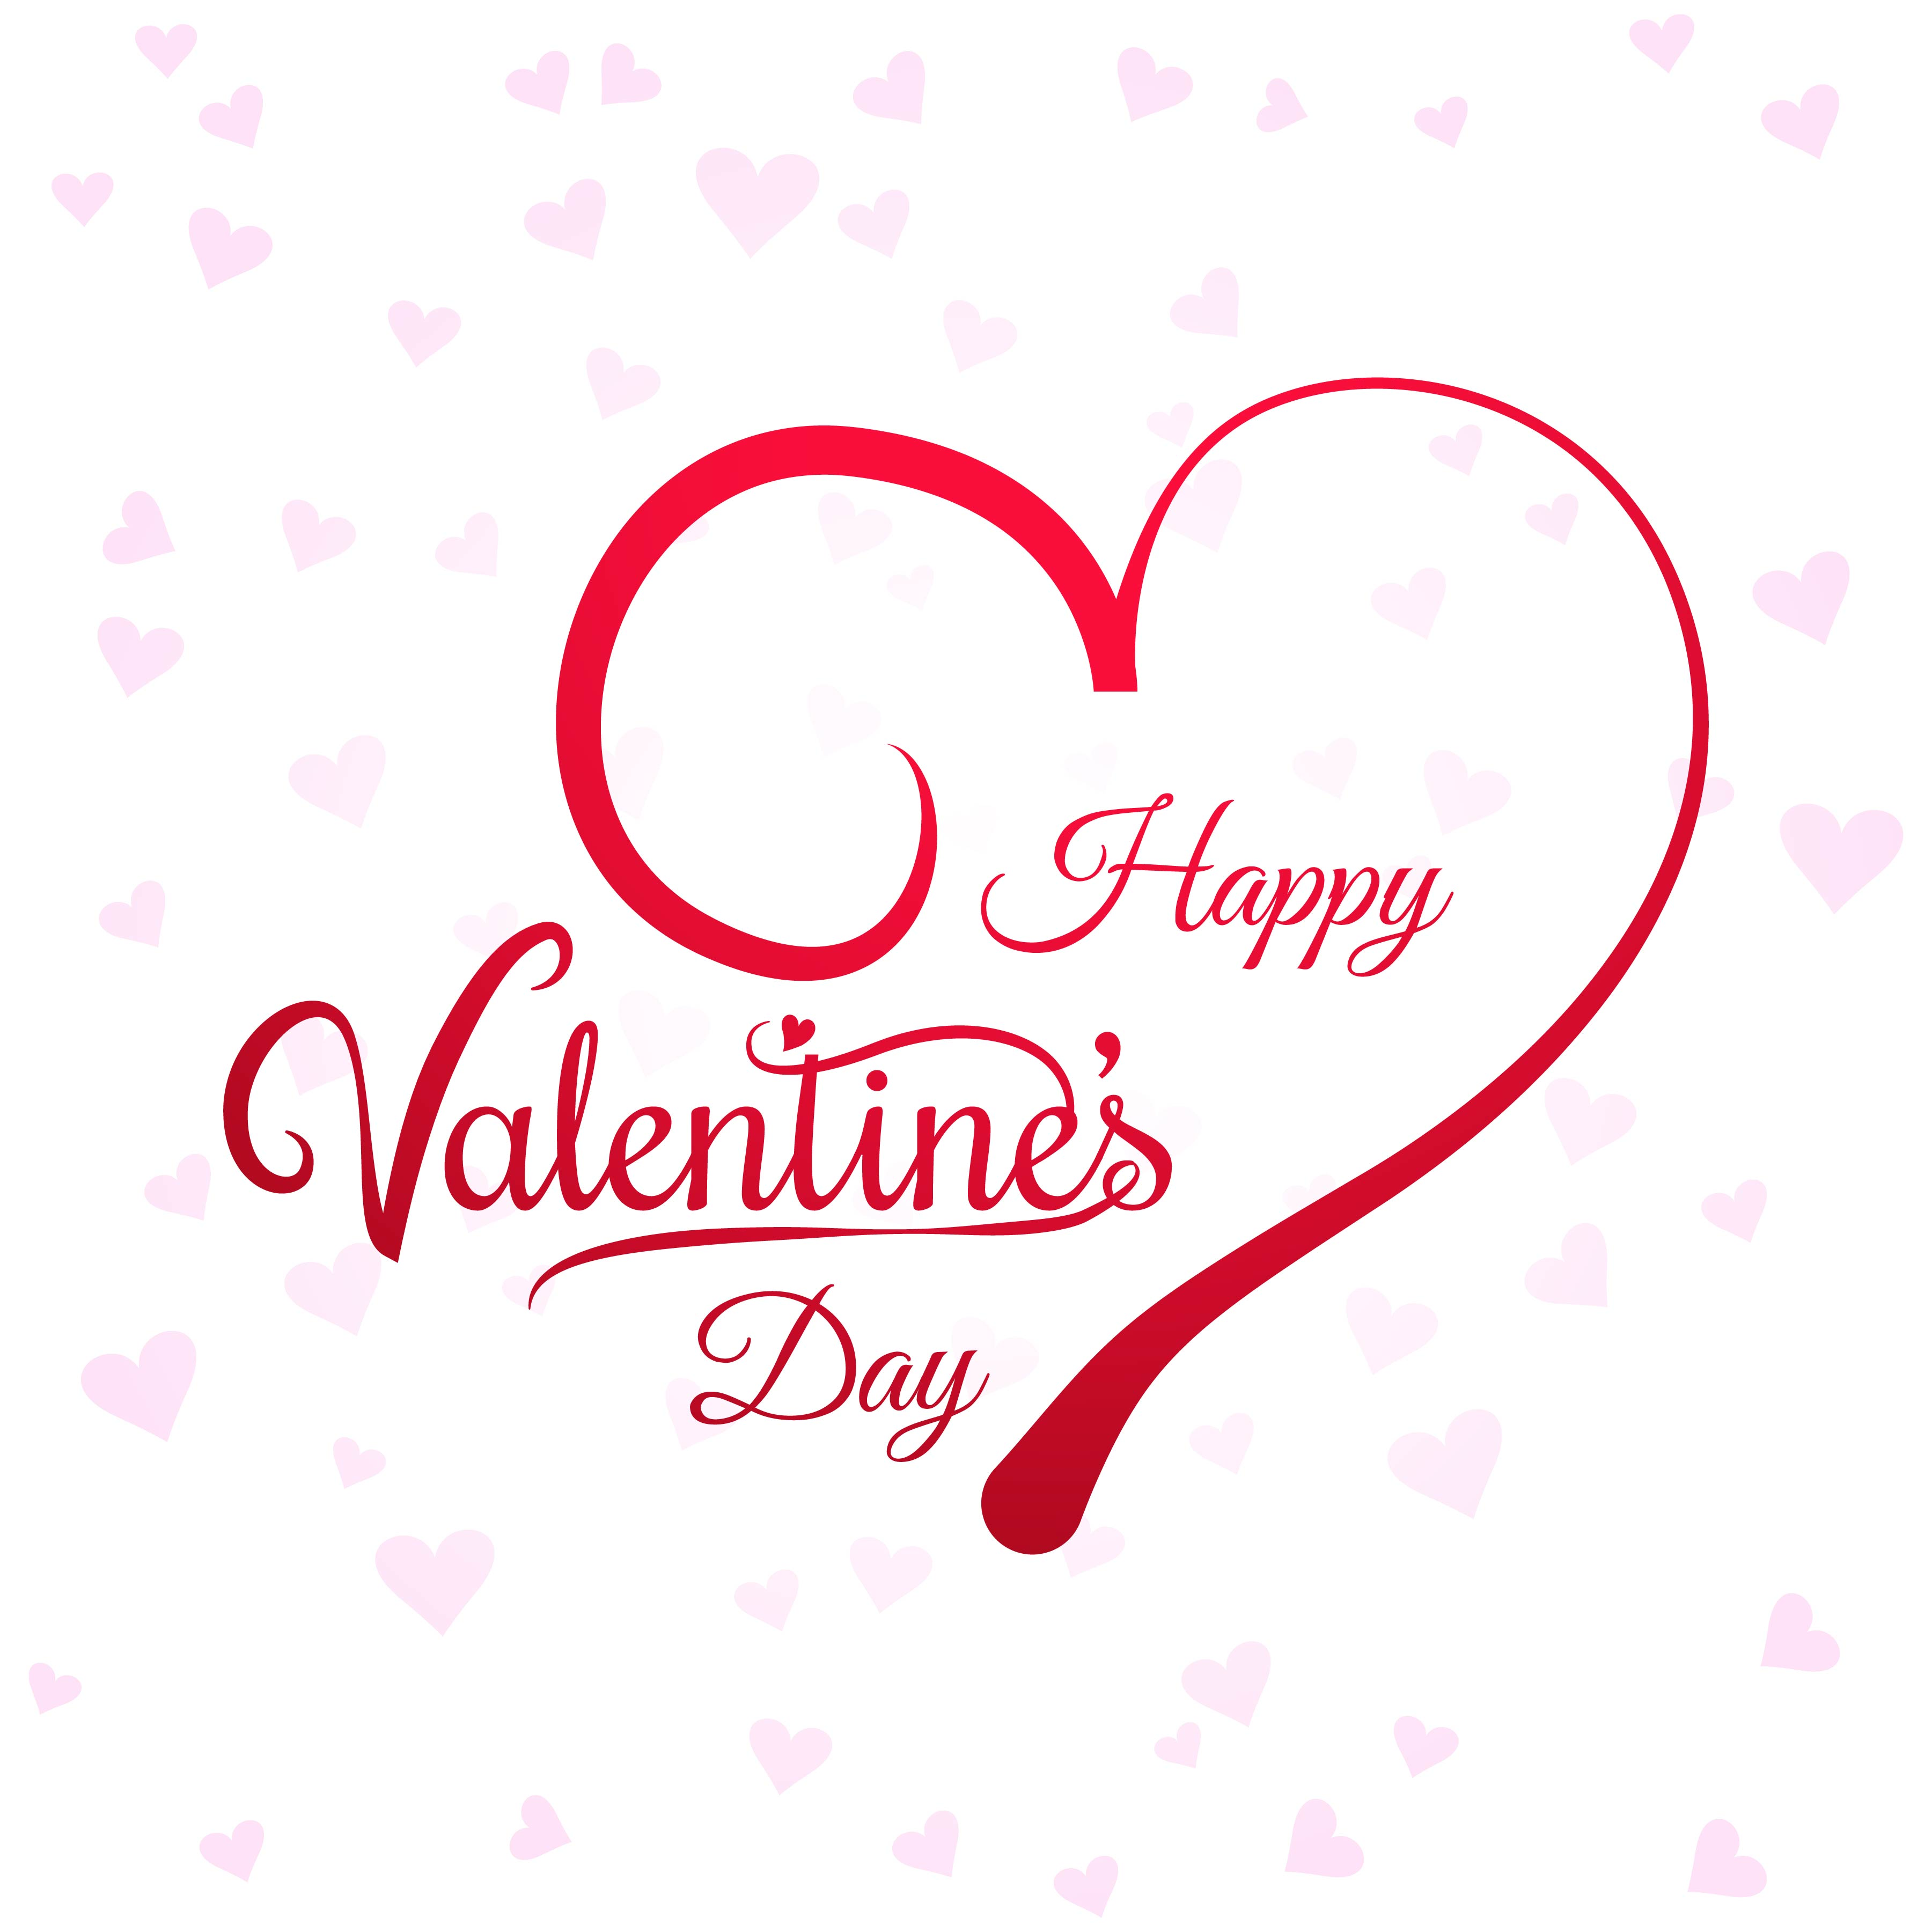 hearts for valentine's day card background 275408